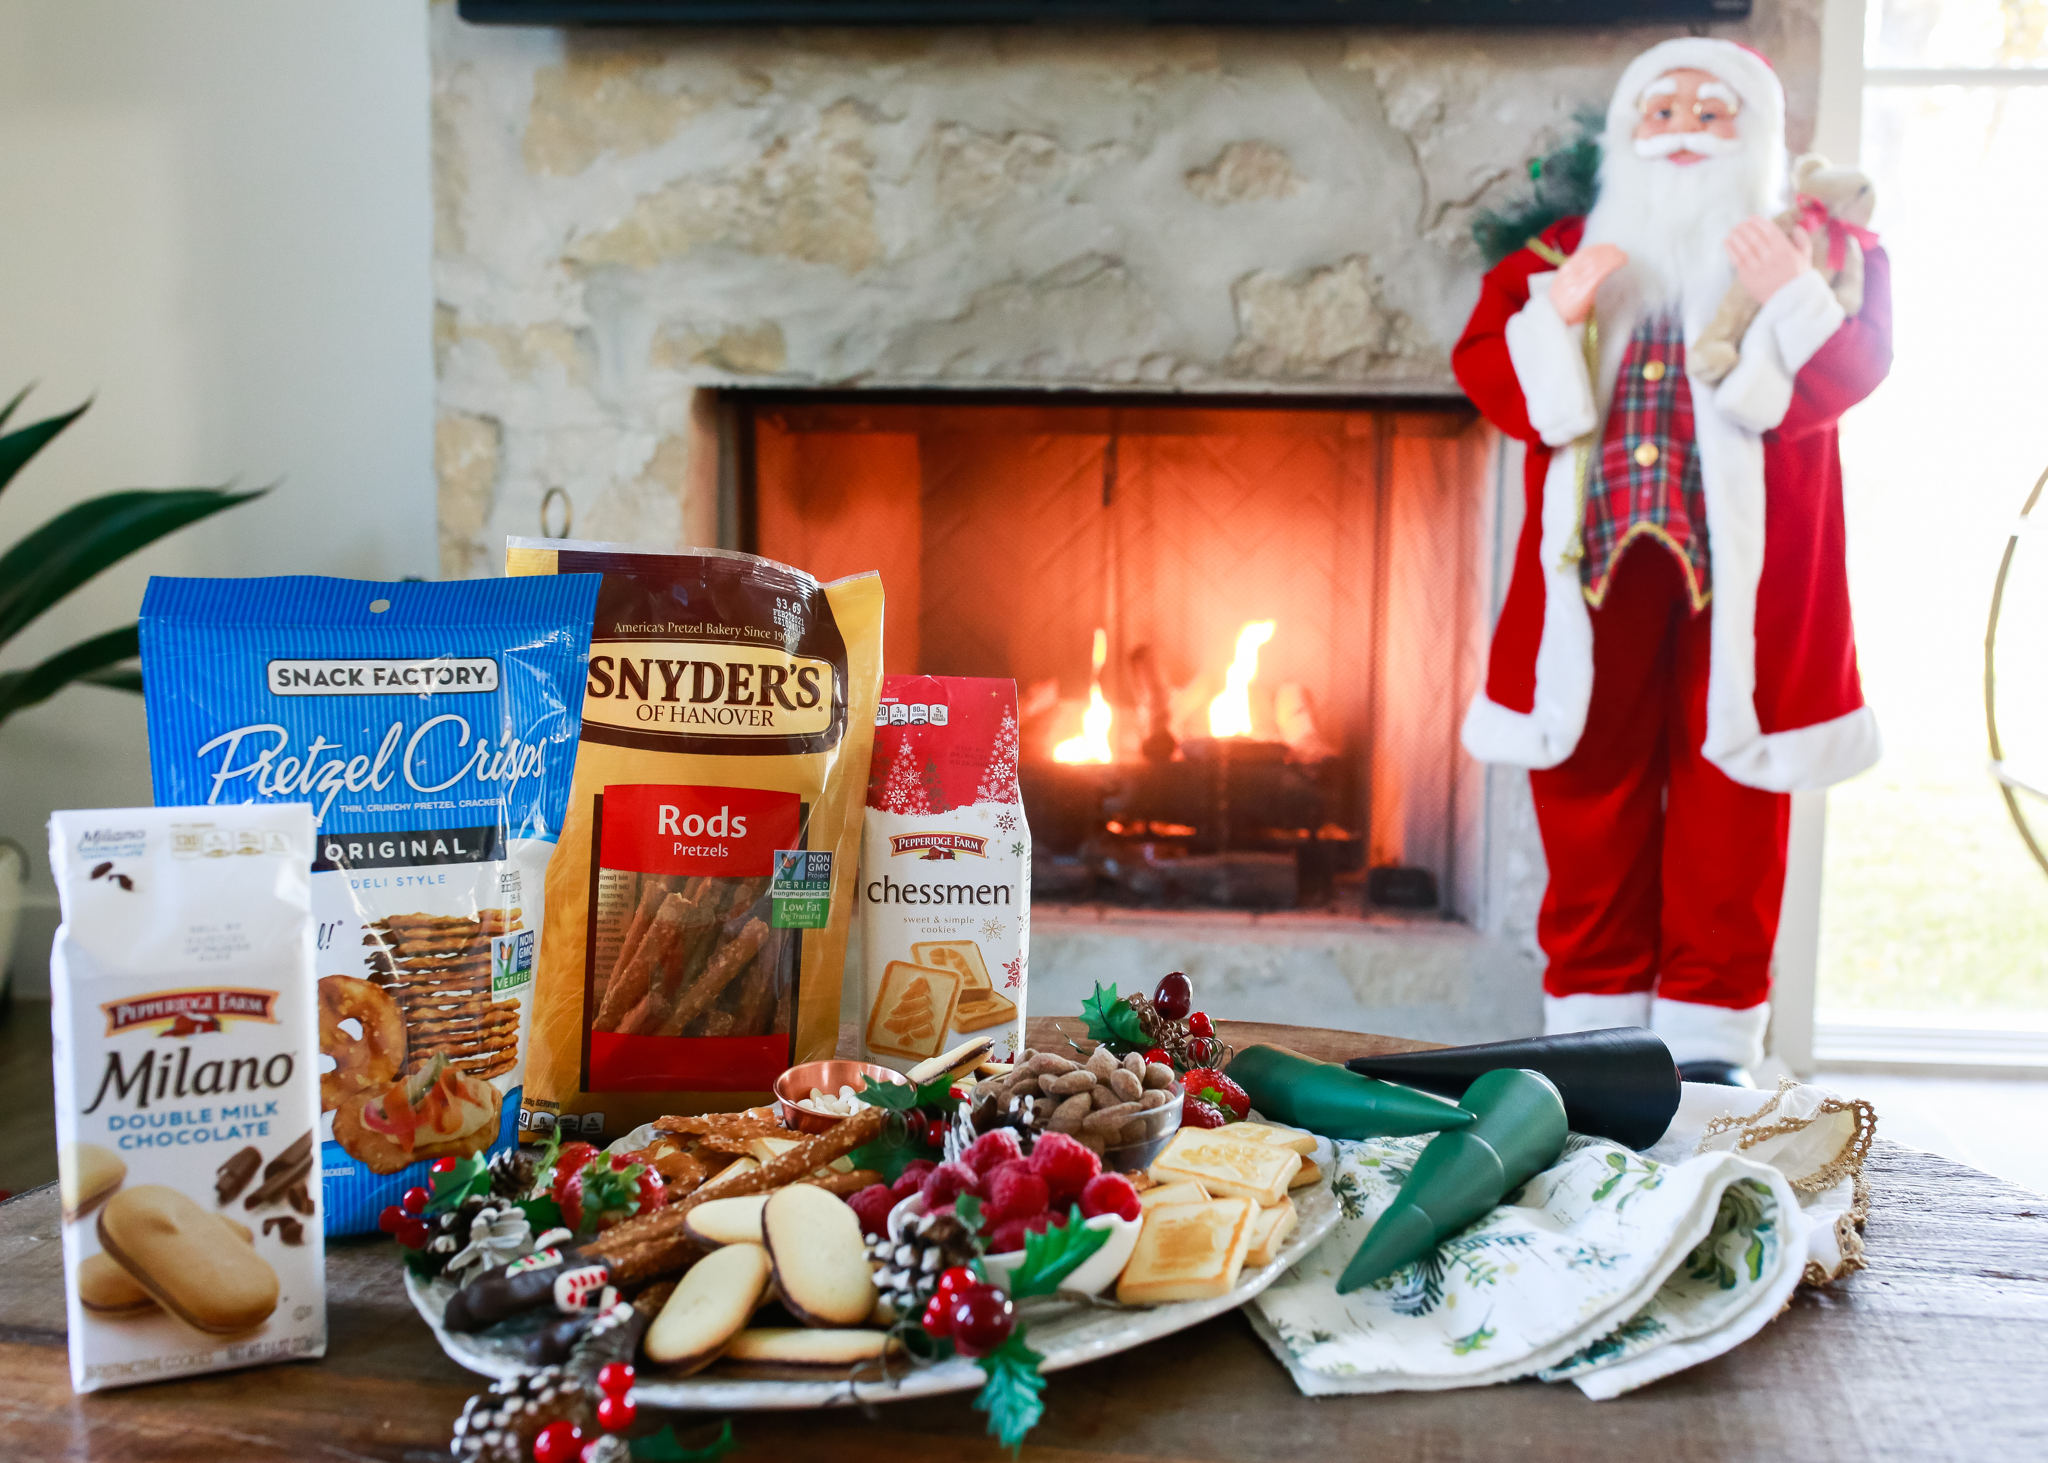 The most delightful holiday Christmas spread.